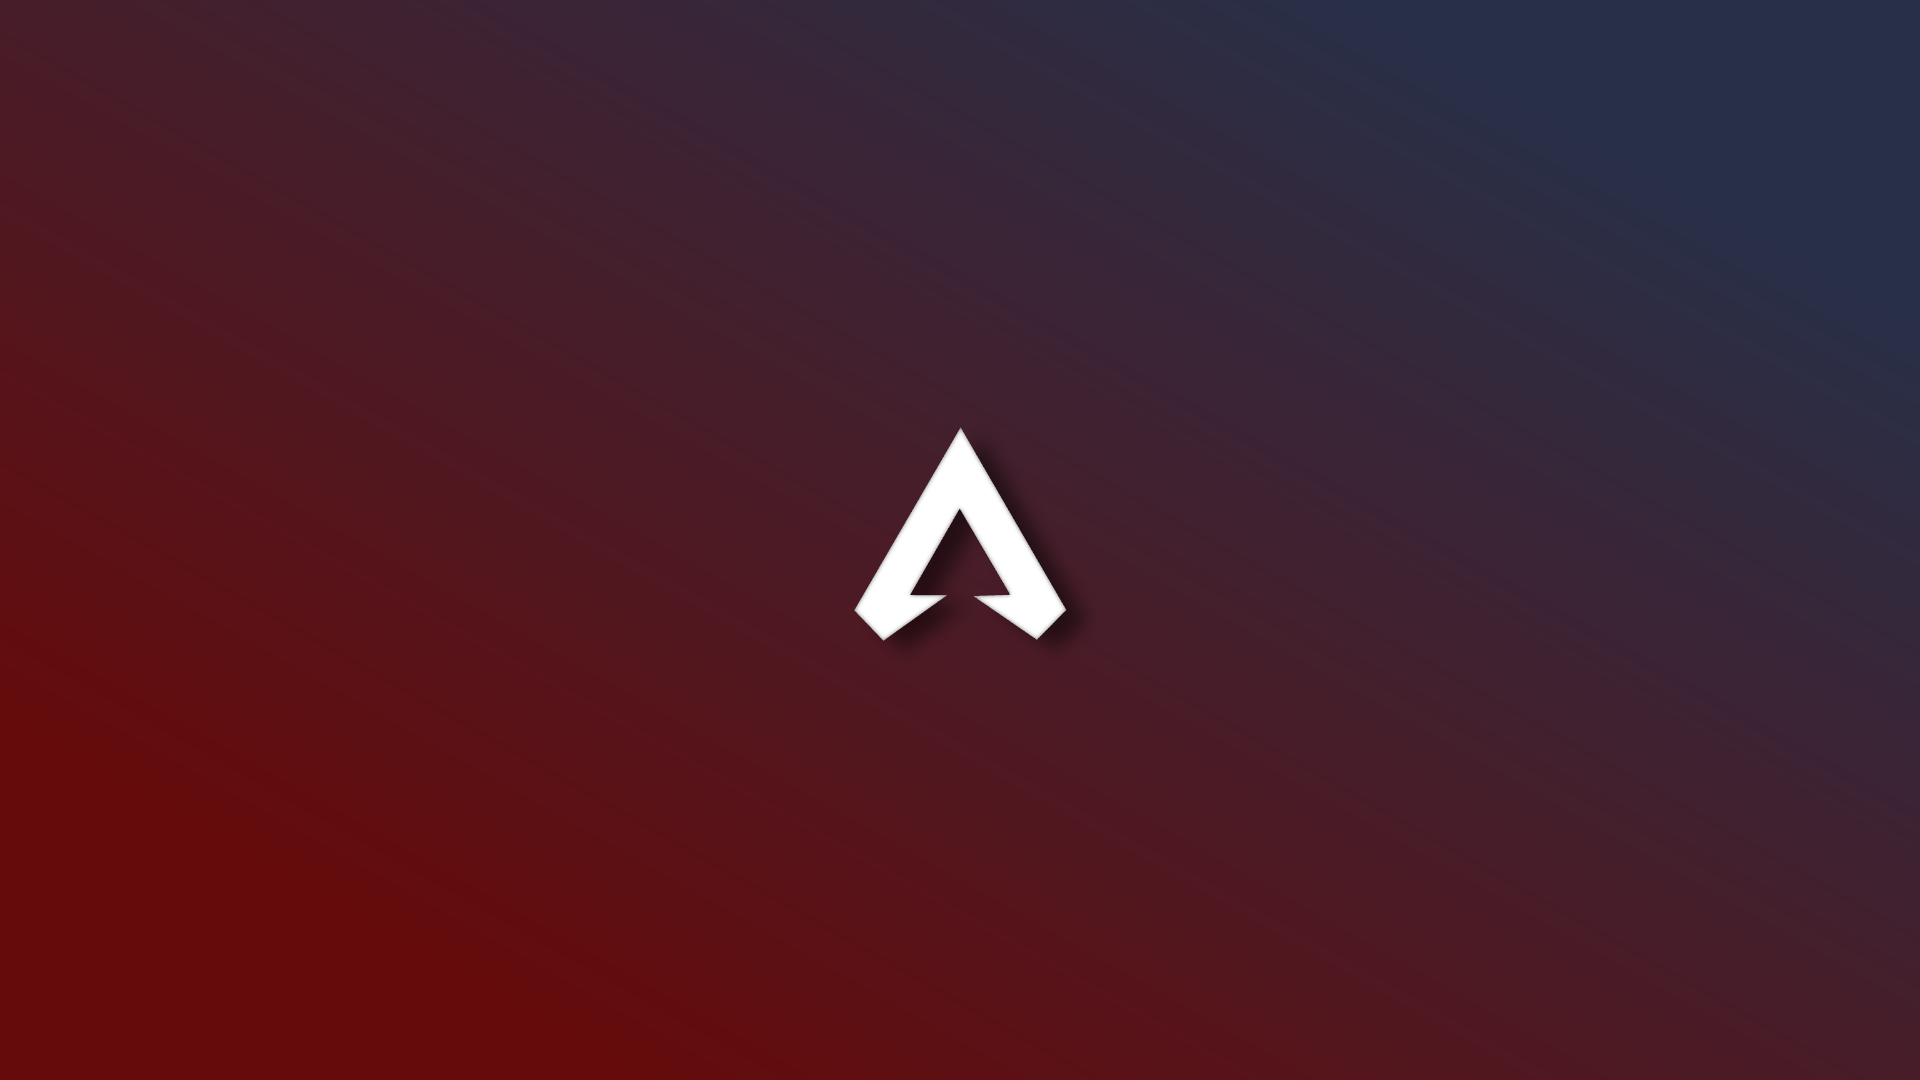 1920x1080 Apex Legends Wallpaper Background Image View Download Comment And Rate Wallpaper Abyss Wallpaper Backgrounds Apex Logo Star Wars Wallpaper